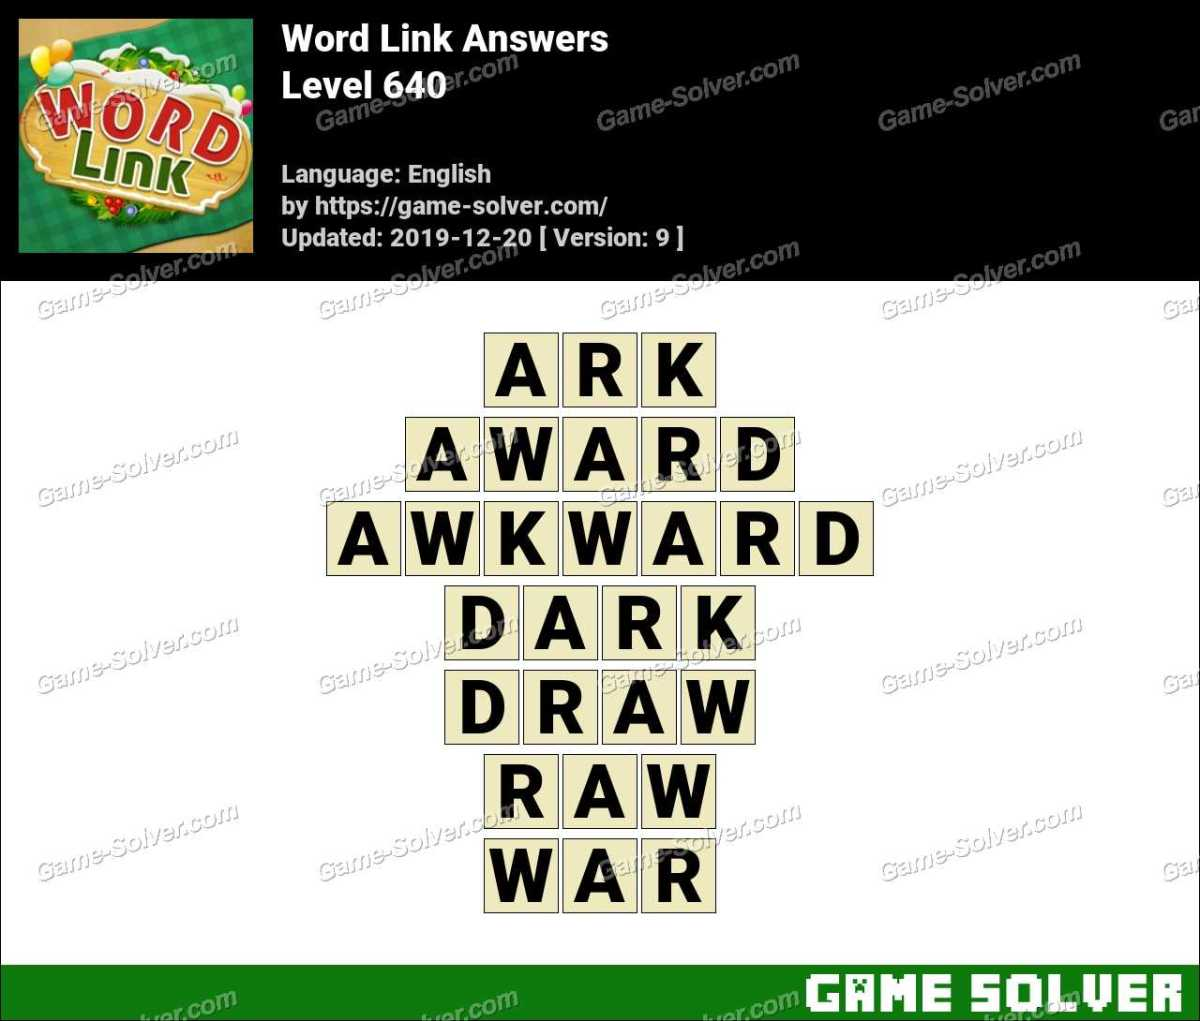 Word Link Level 640 Answers